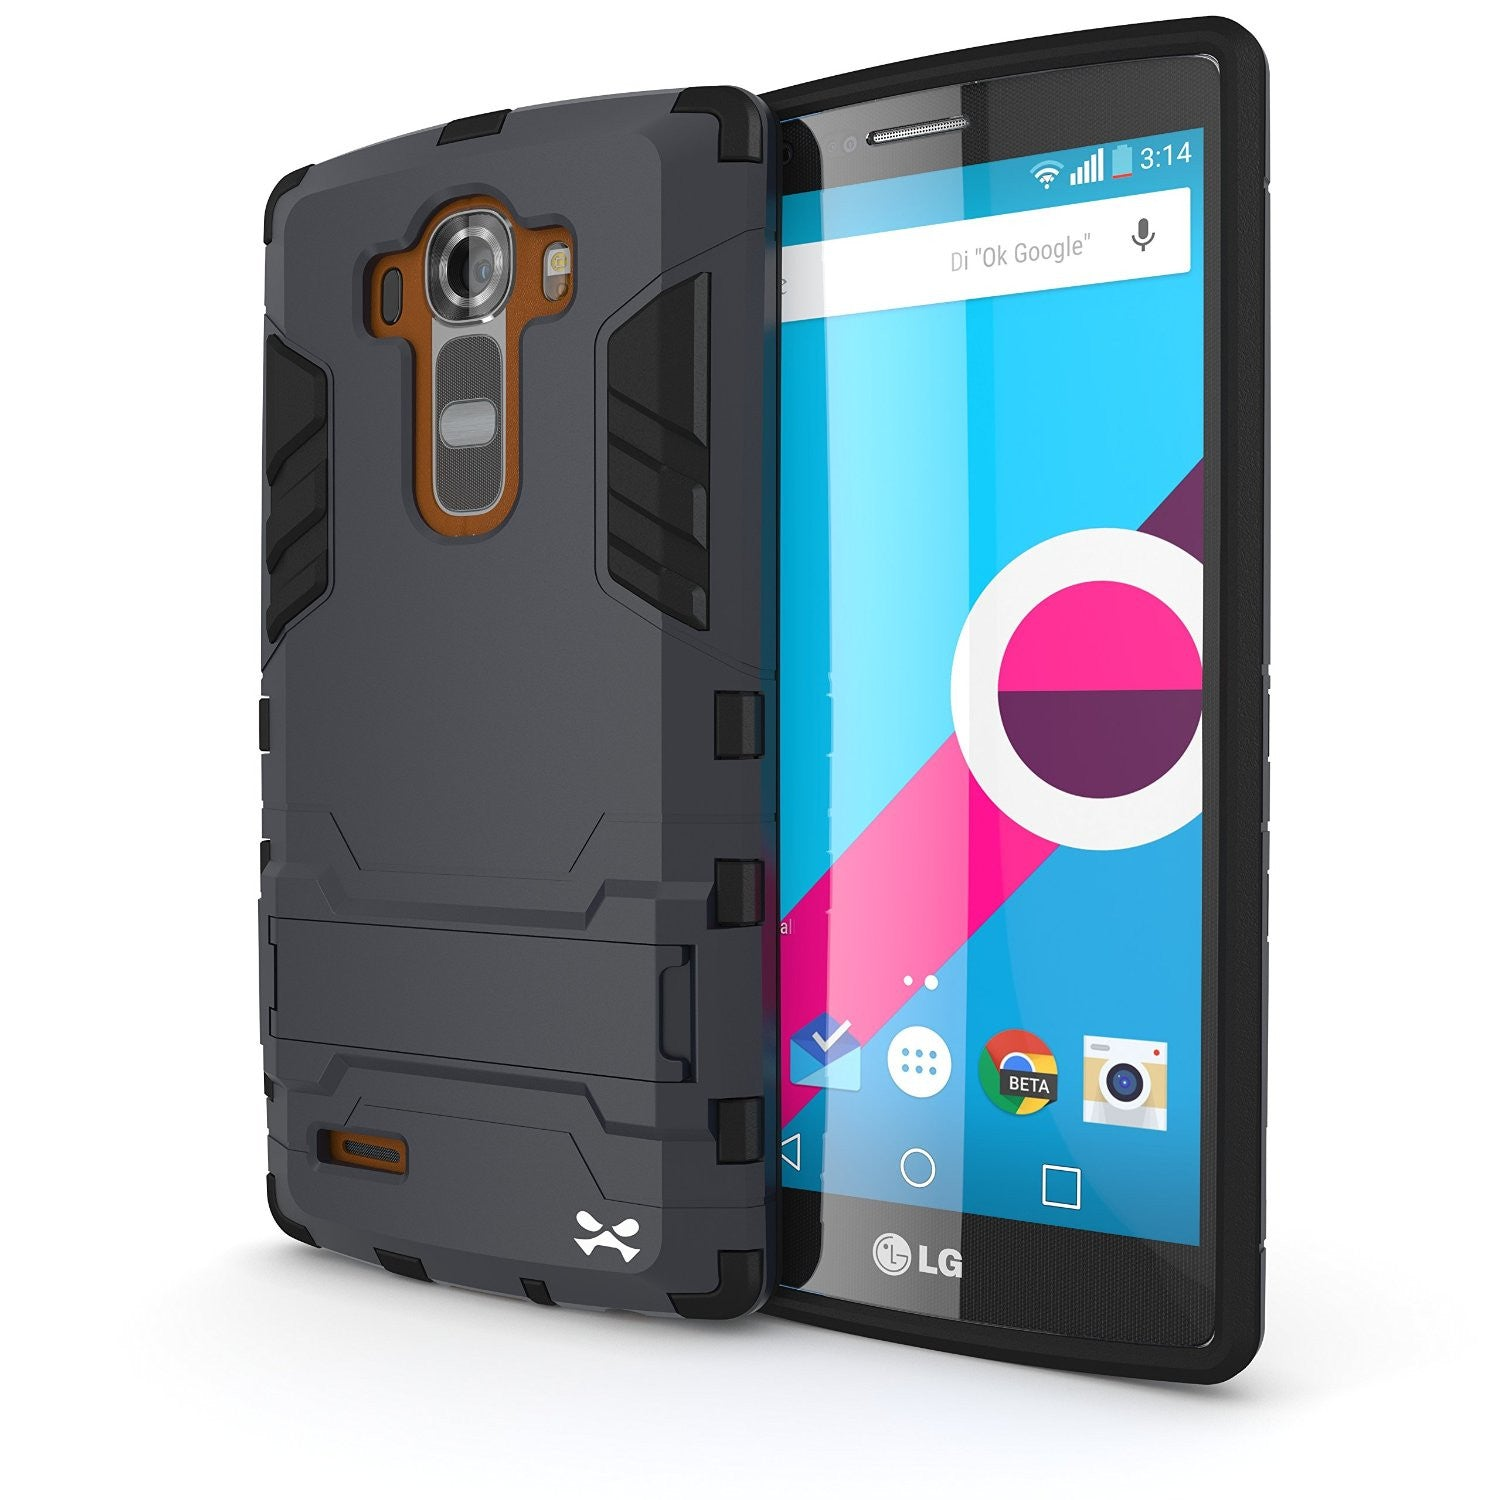 LG G4 Case Ghostek Armadillo 2.0 Dark Navy w/ Tempered Glass Protector | Slim Armor | Kickstand